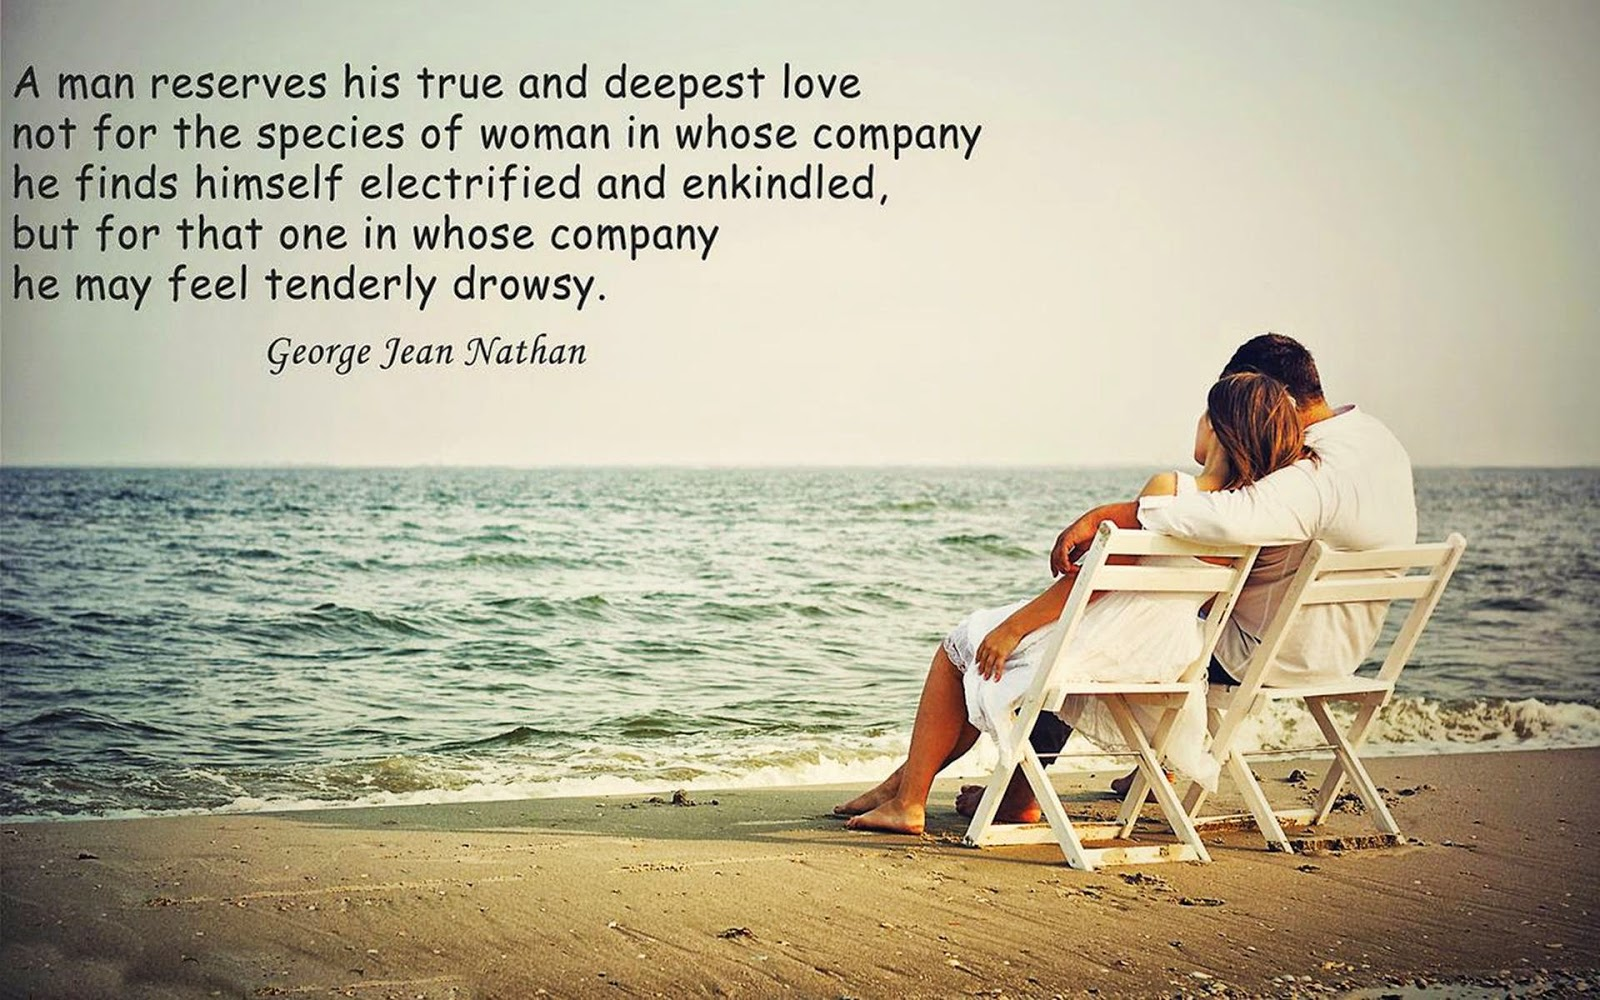 Love And Relationship Quotes Best All In One Quotes A Man Reserves His True And Deepest Love